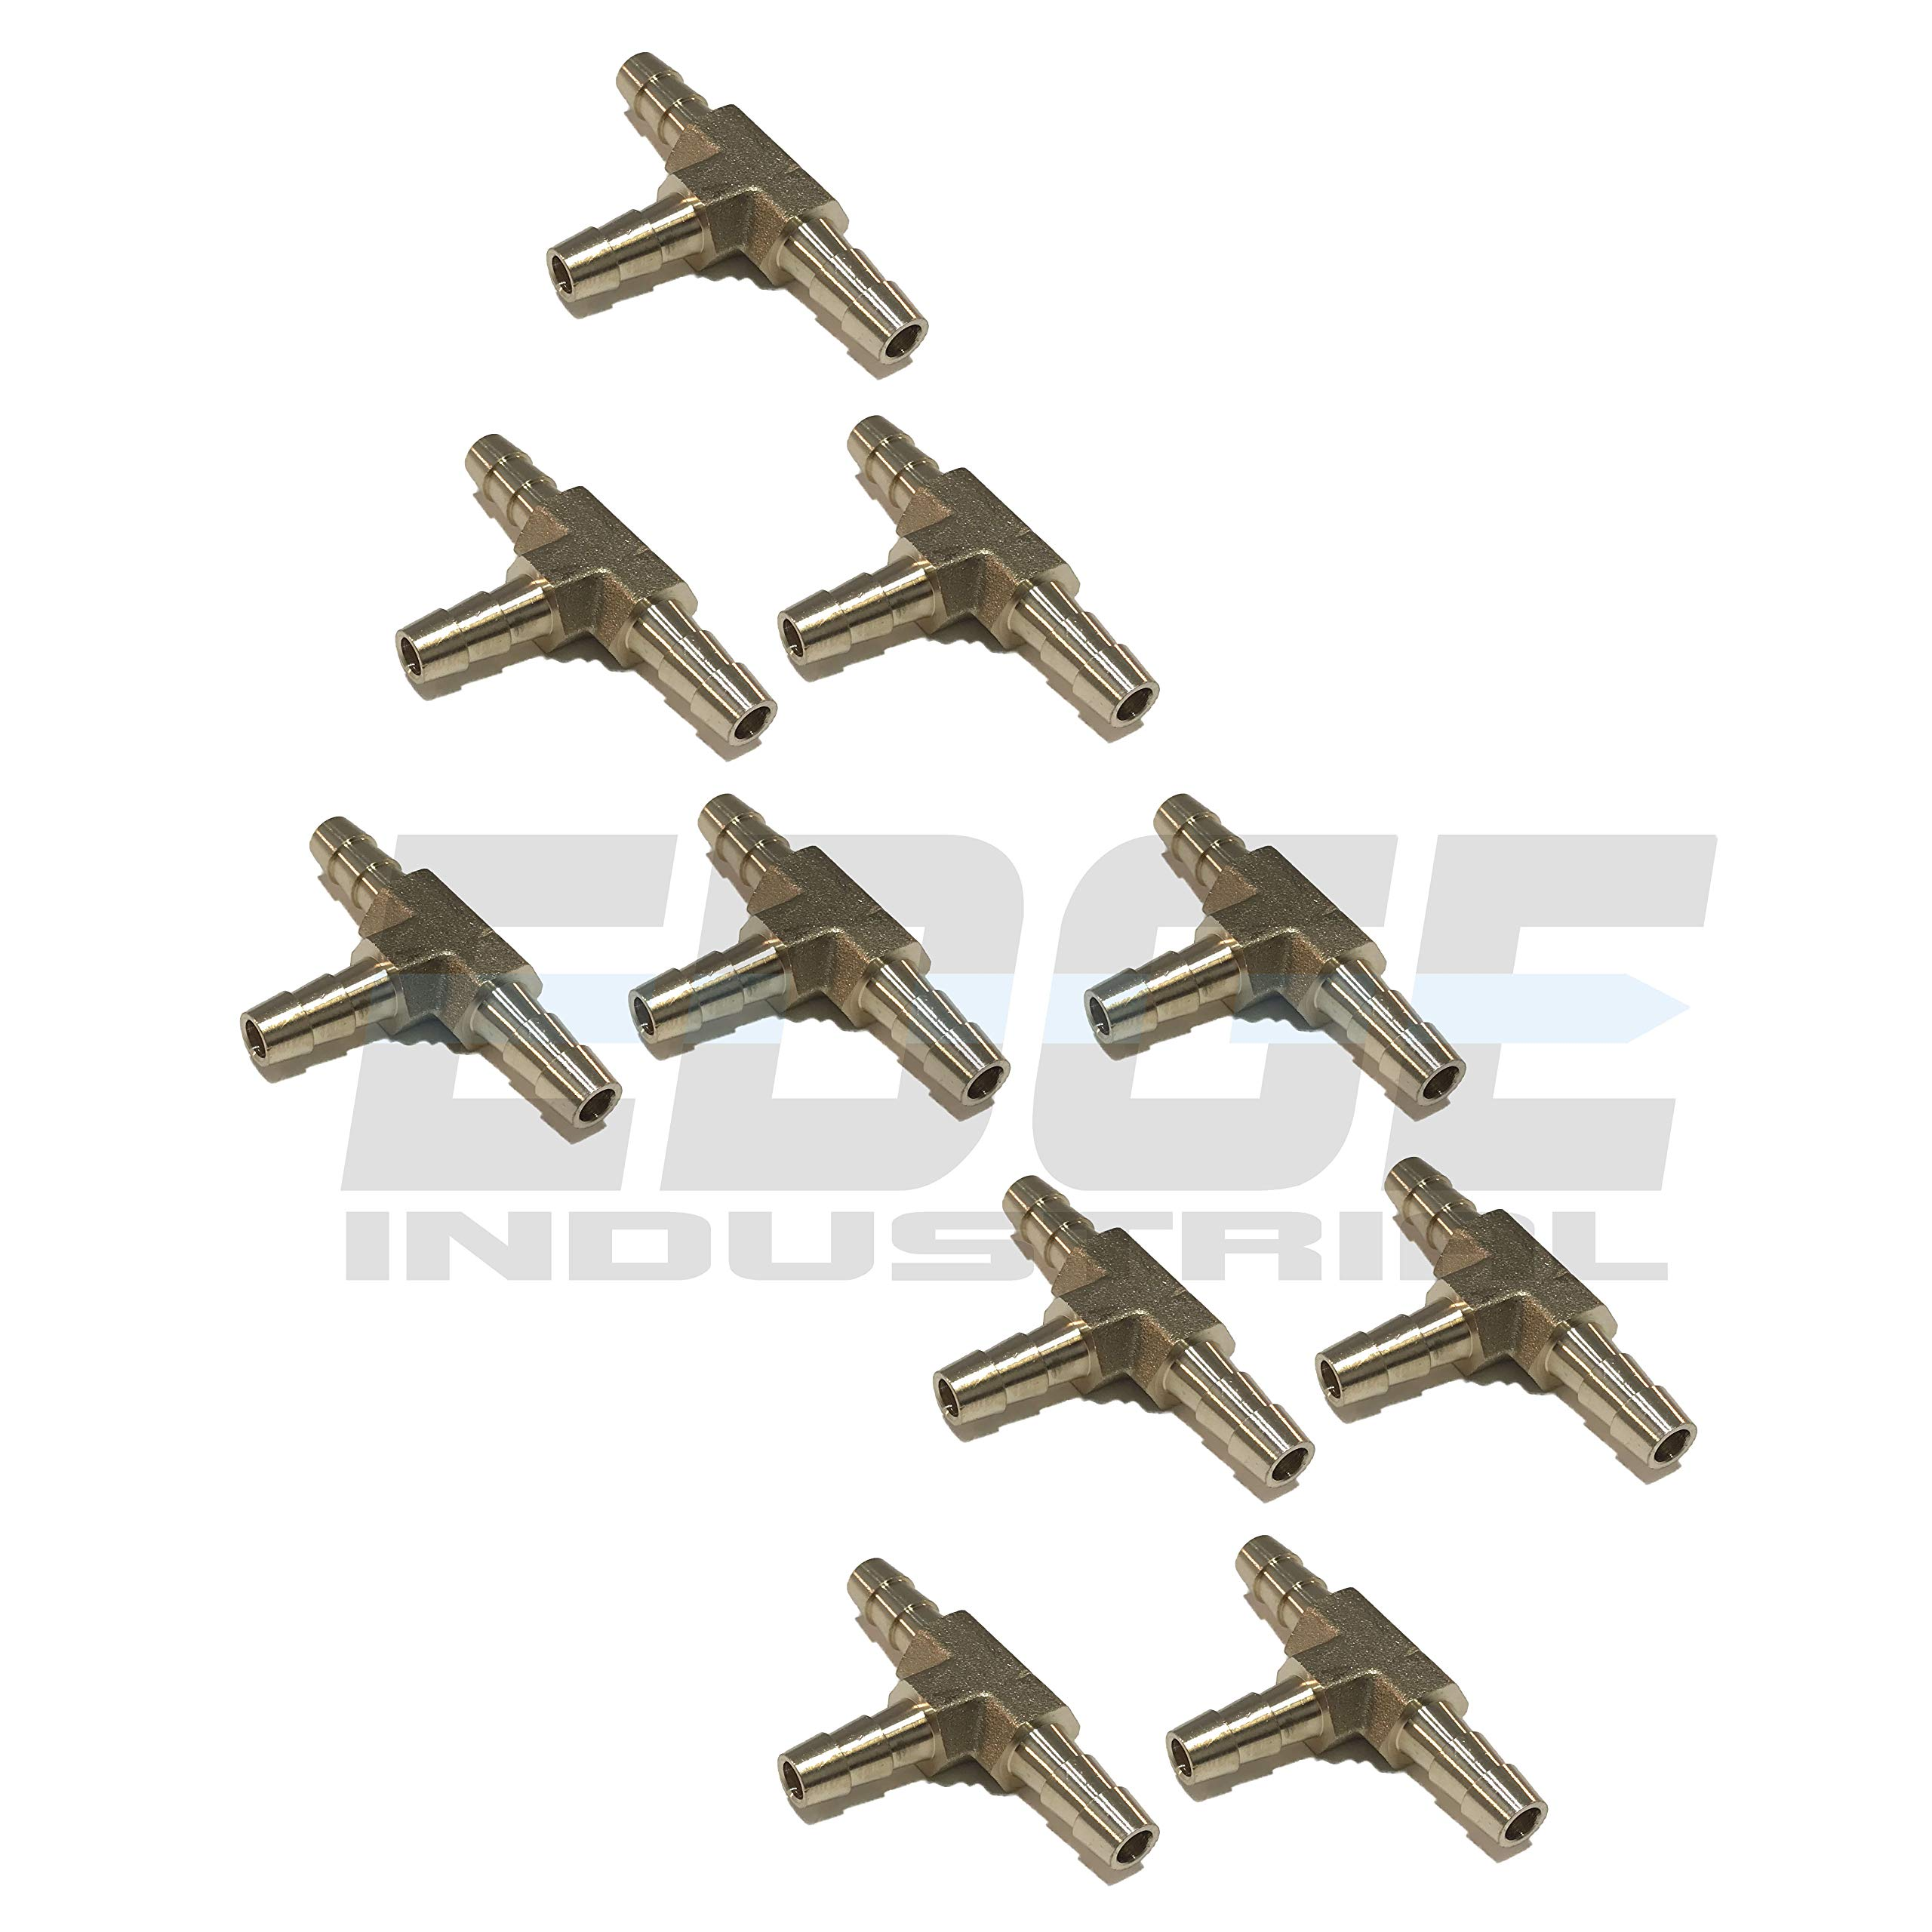 EDGE INDUSTRIAL 1/4'' Hose ID Brass Hose Barb TEE SPLICER Fitting Fuel / AIR / Water / Oil / Gas / WOG (Qty 10)